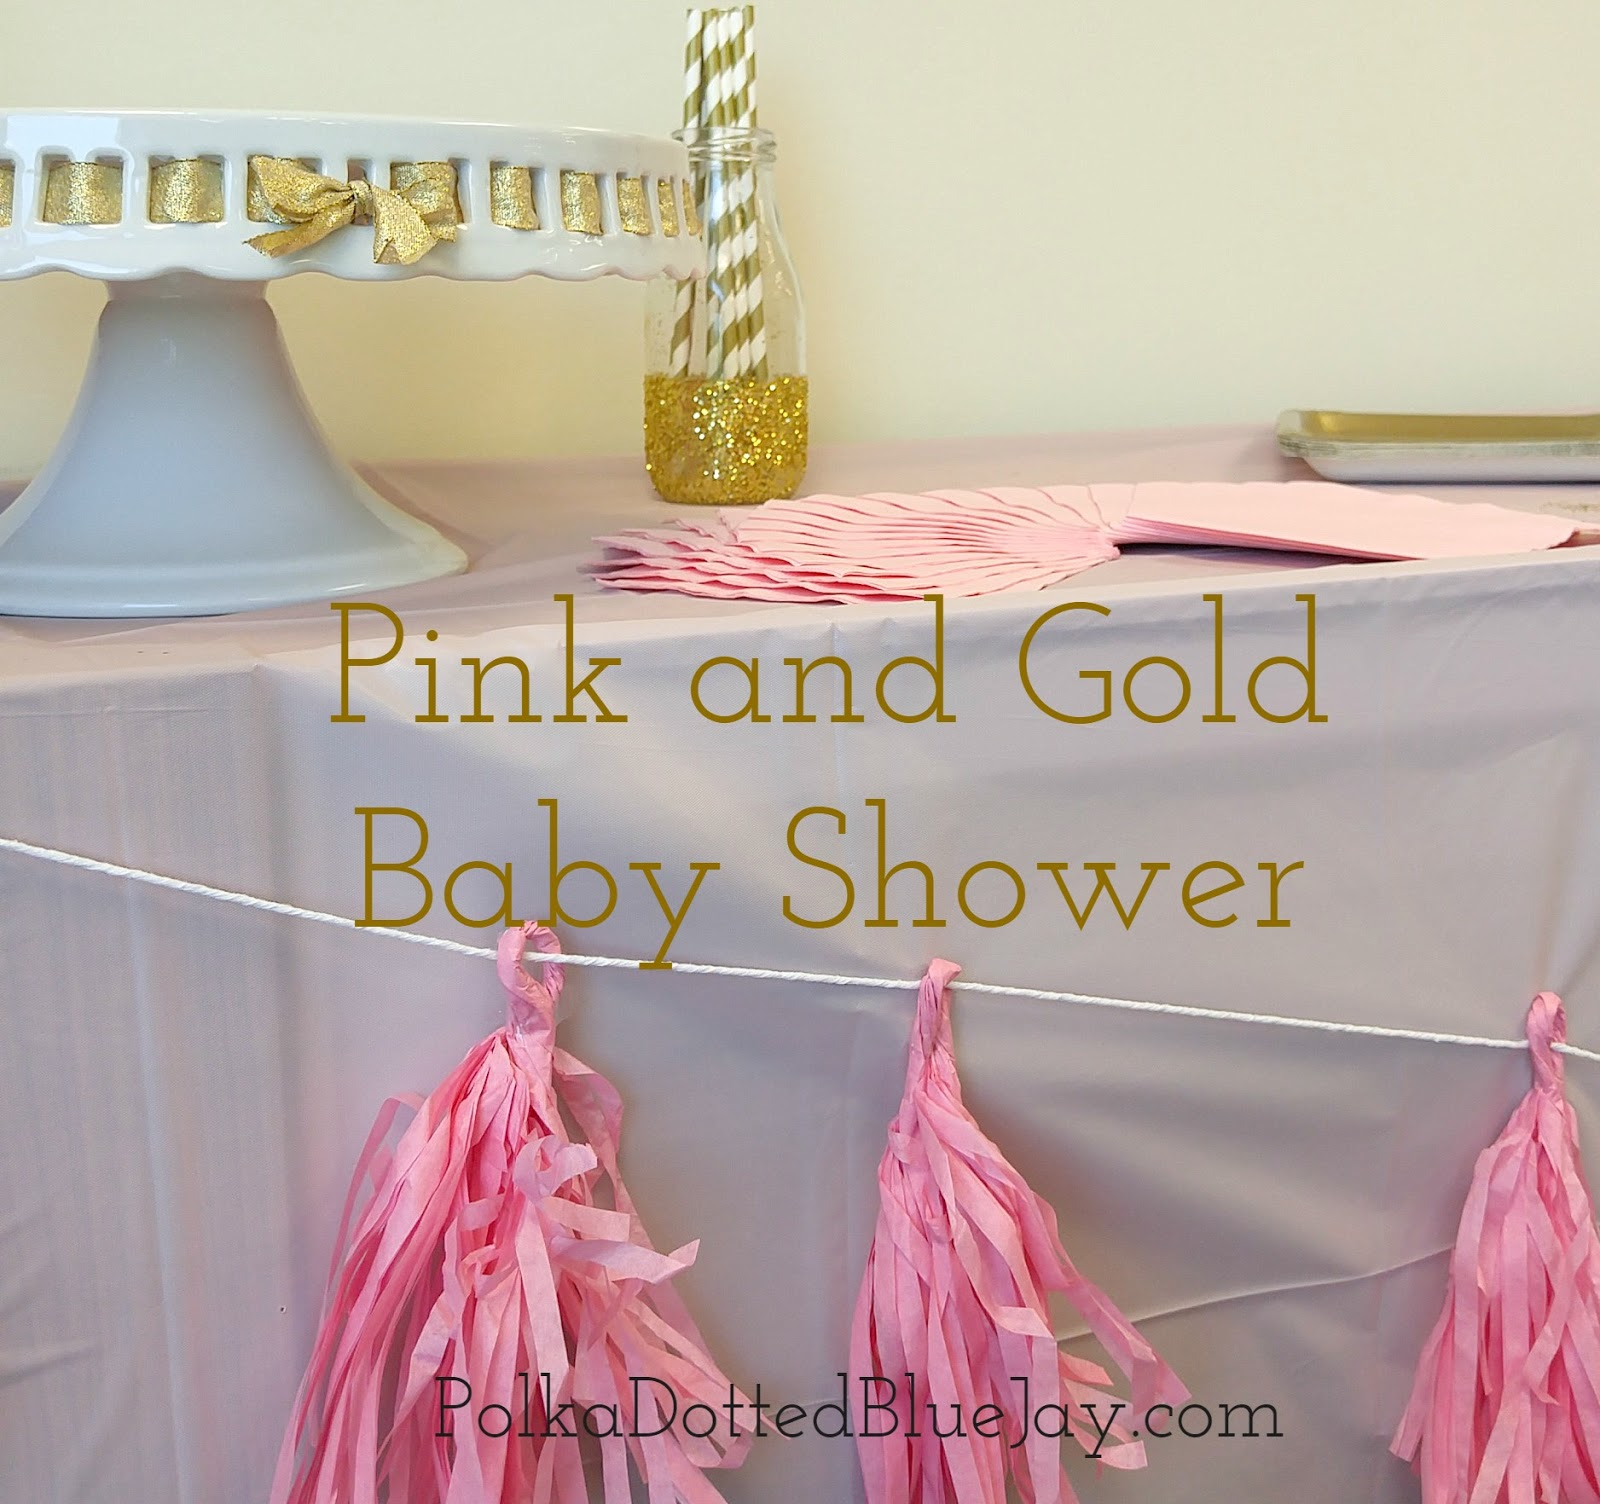 Pink And Gold Baby Shower Polka Dotted Blue Jay